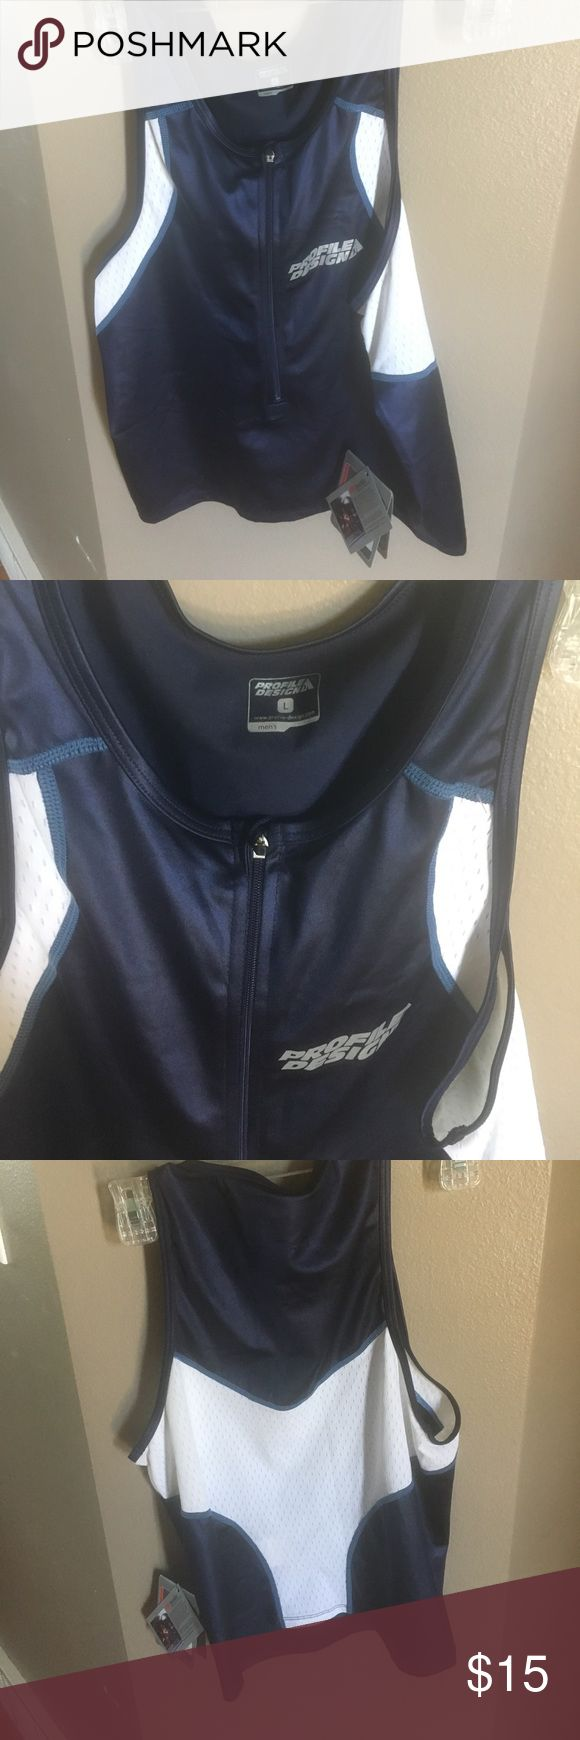 Men's triathlon top size large A new with tags profile designs men's large triathlon top profile Design Shirts Tank Tops